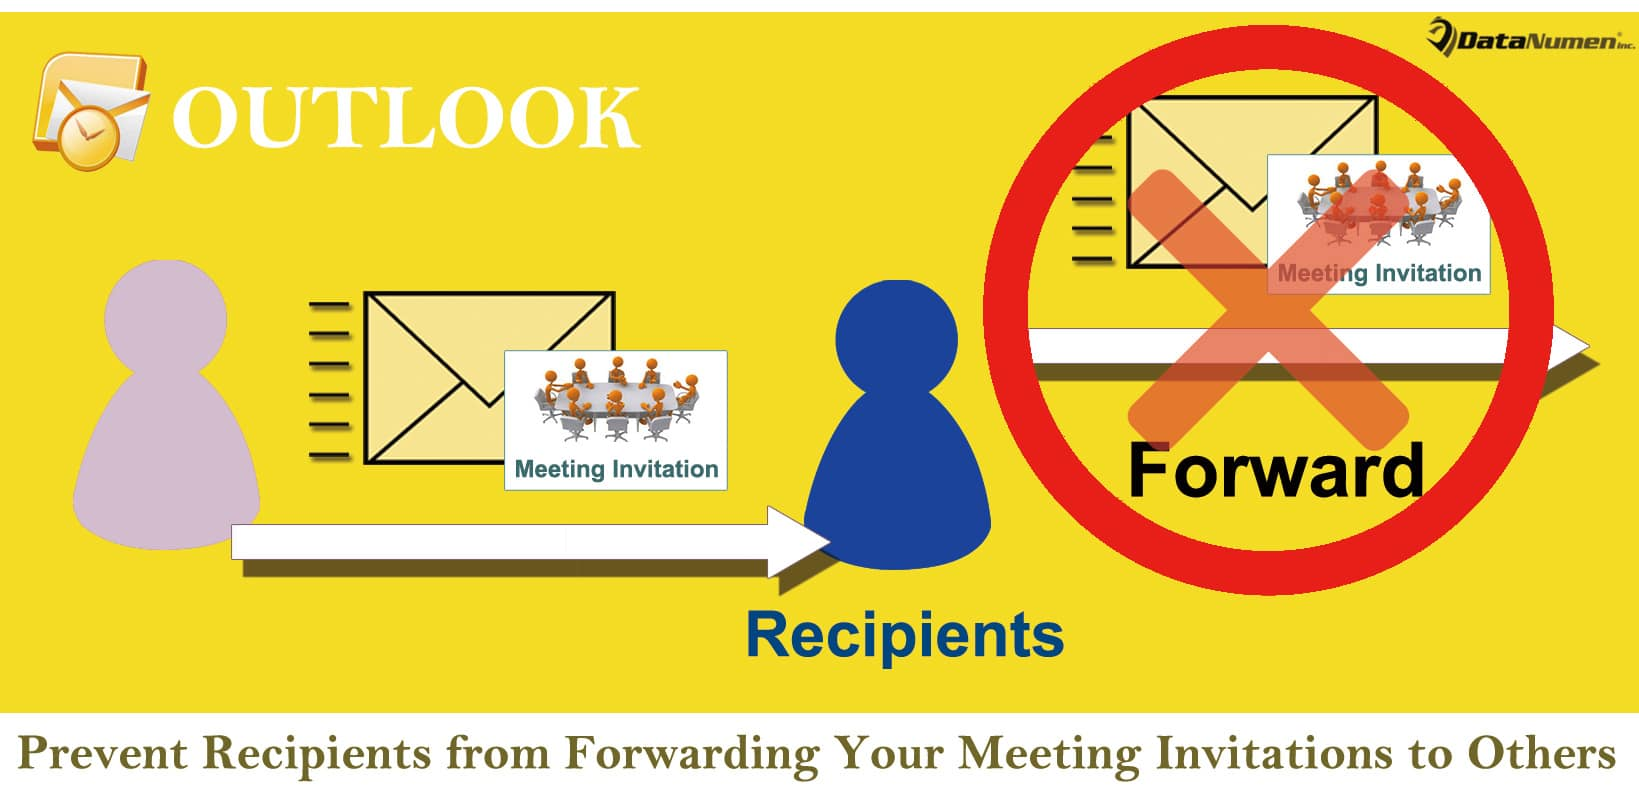 2 Ways to Prevent Recipients from Forwarding Your Meeting